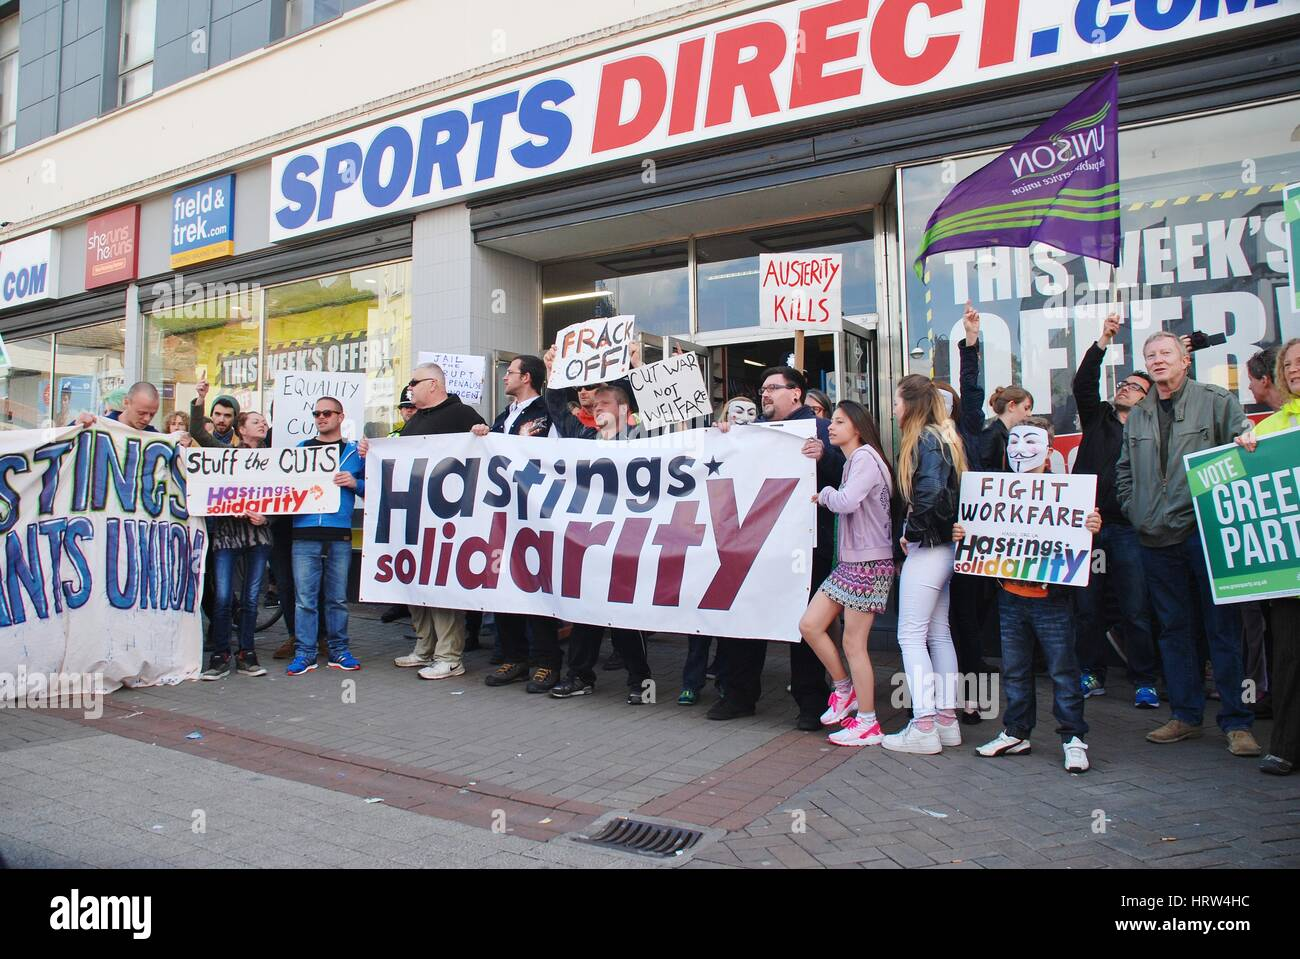 People protest against zero hour contracts outside a branch of Sports Direct following an anti austerity march at - Stock Image